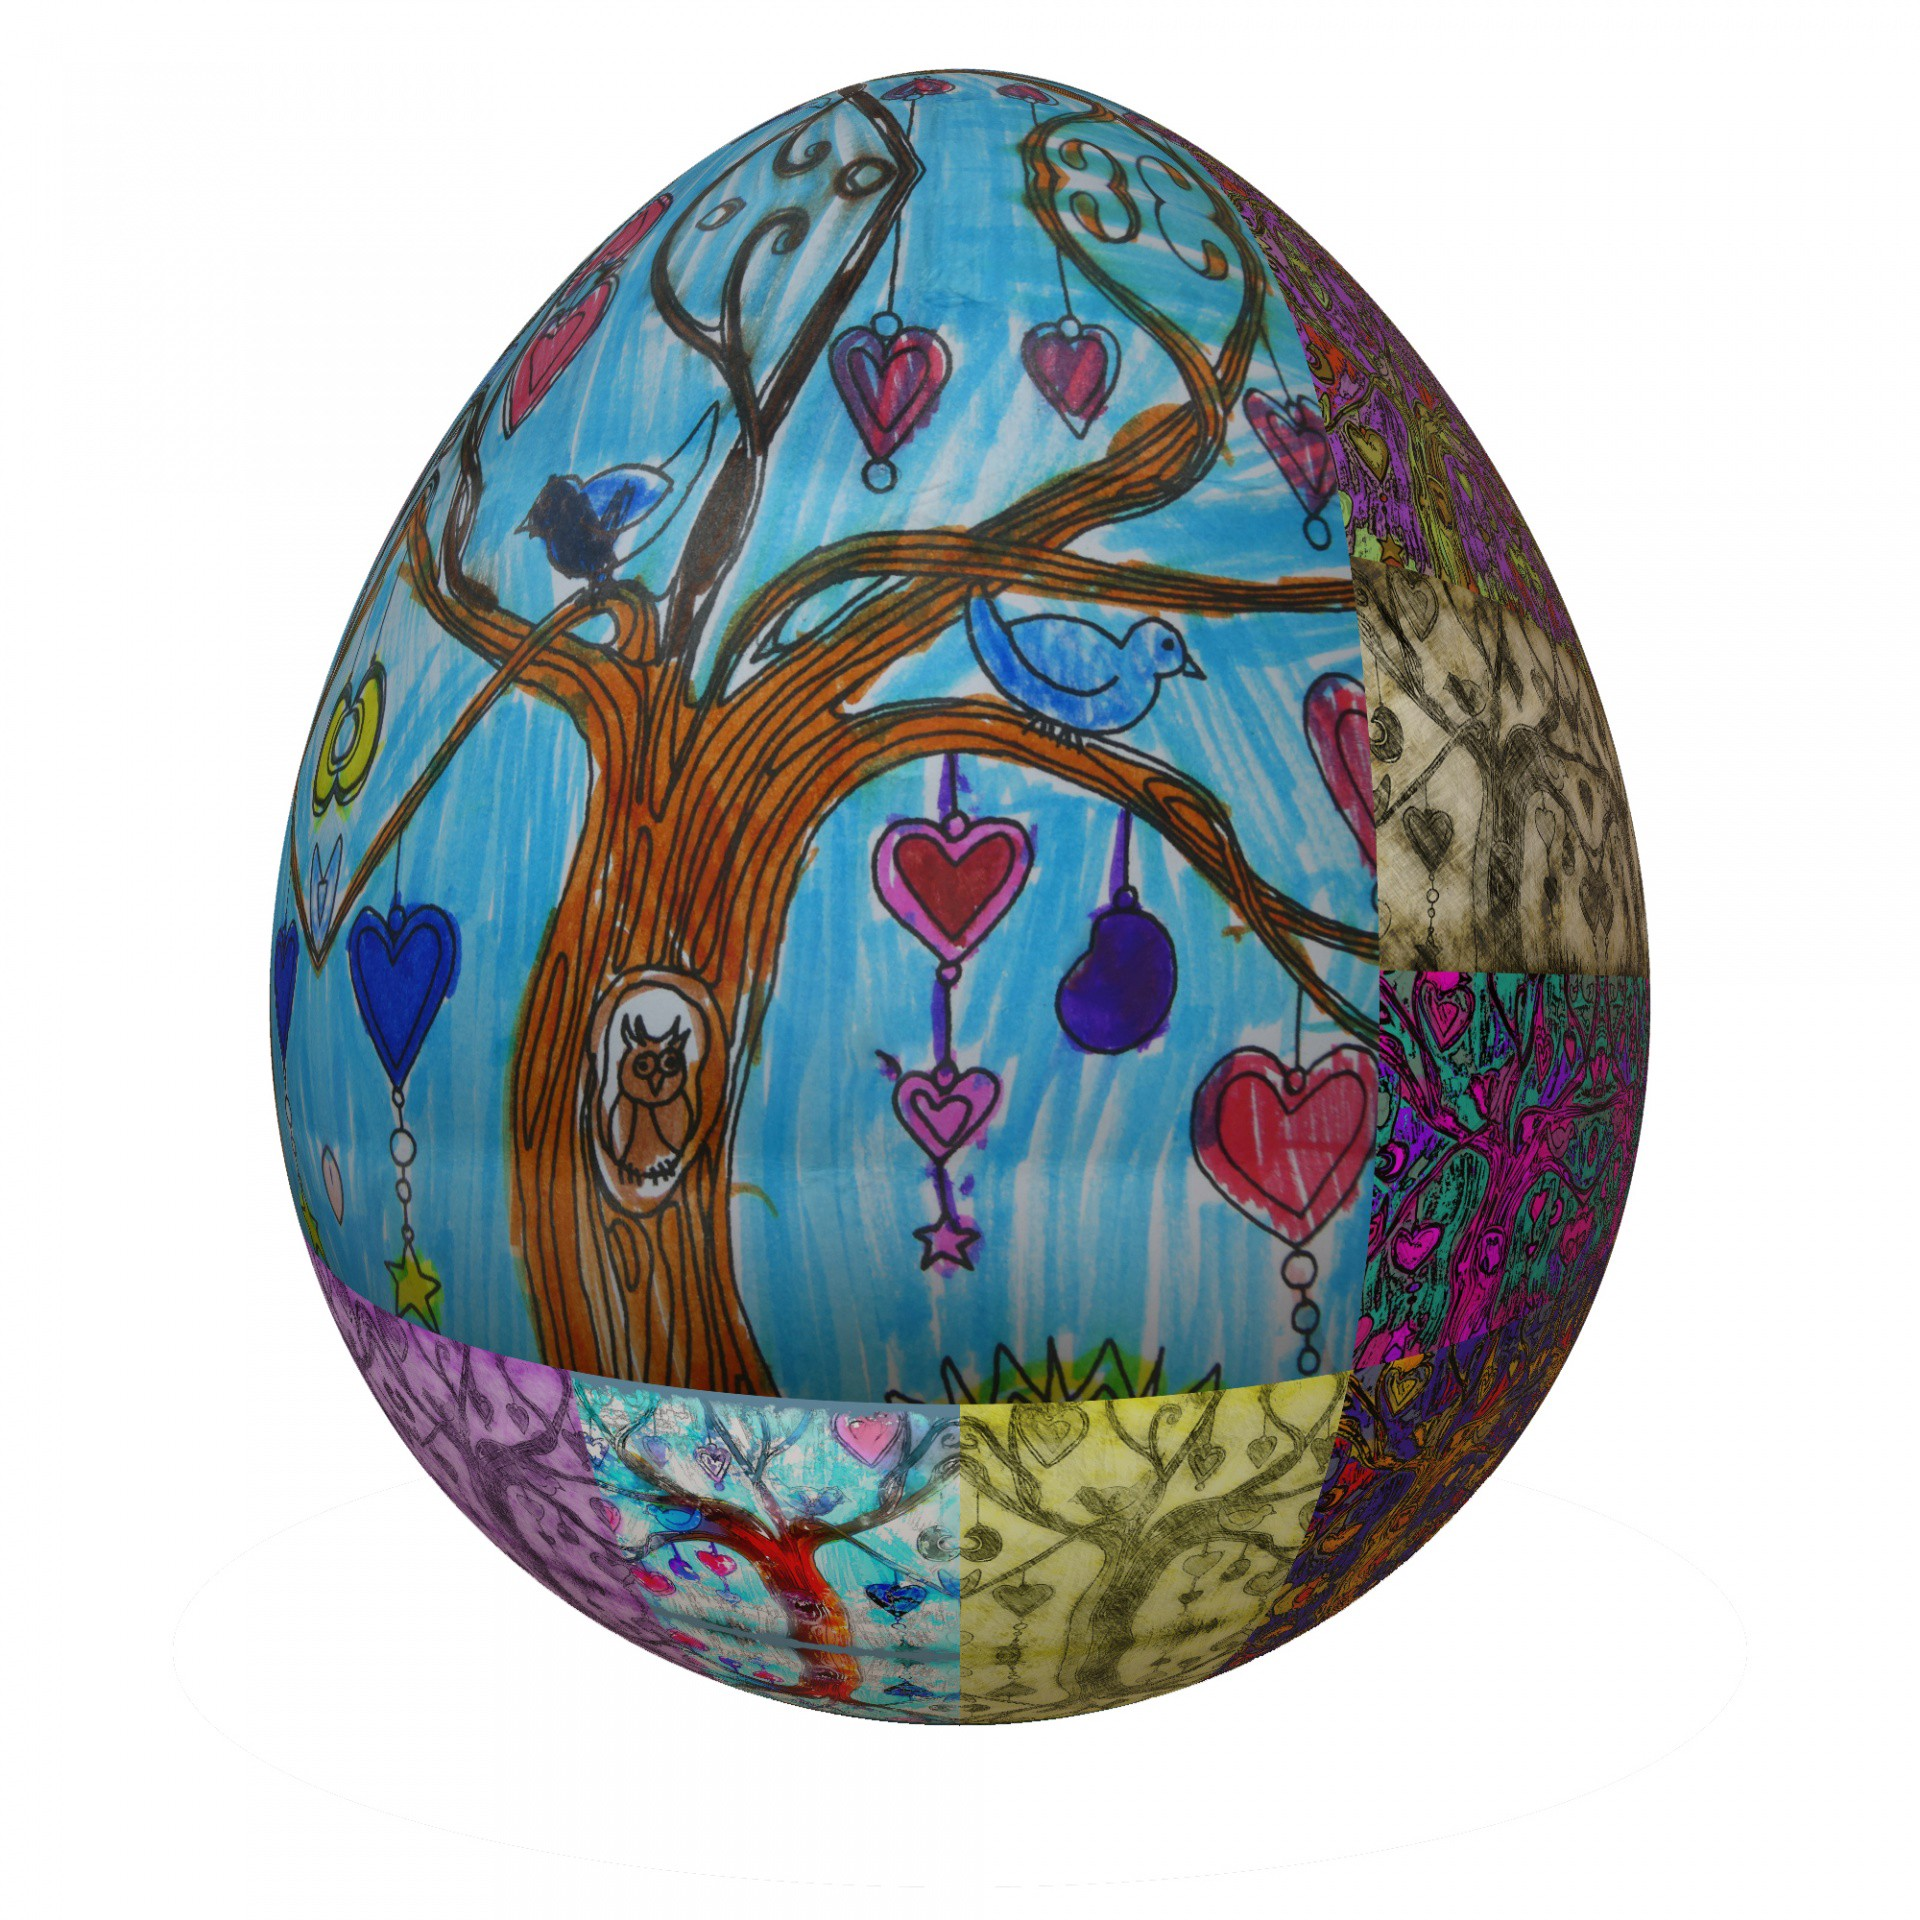 An antique Easter egg with hand-drawn images of a tree, an owl, and hearts